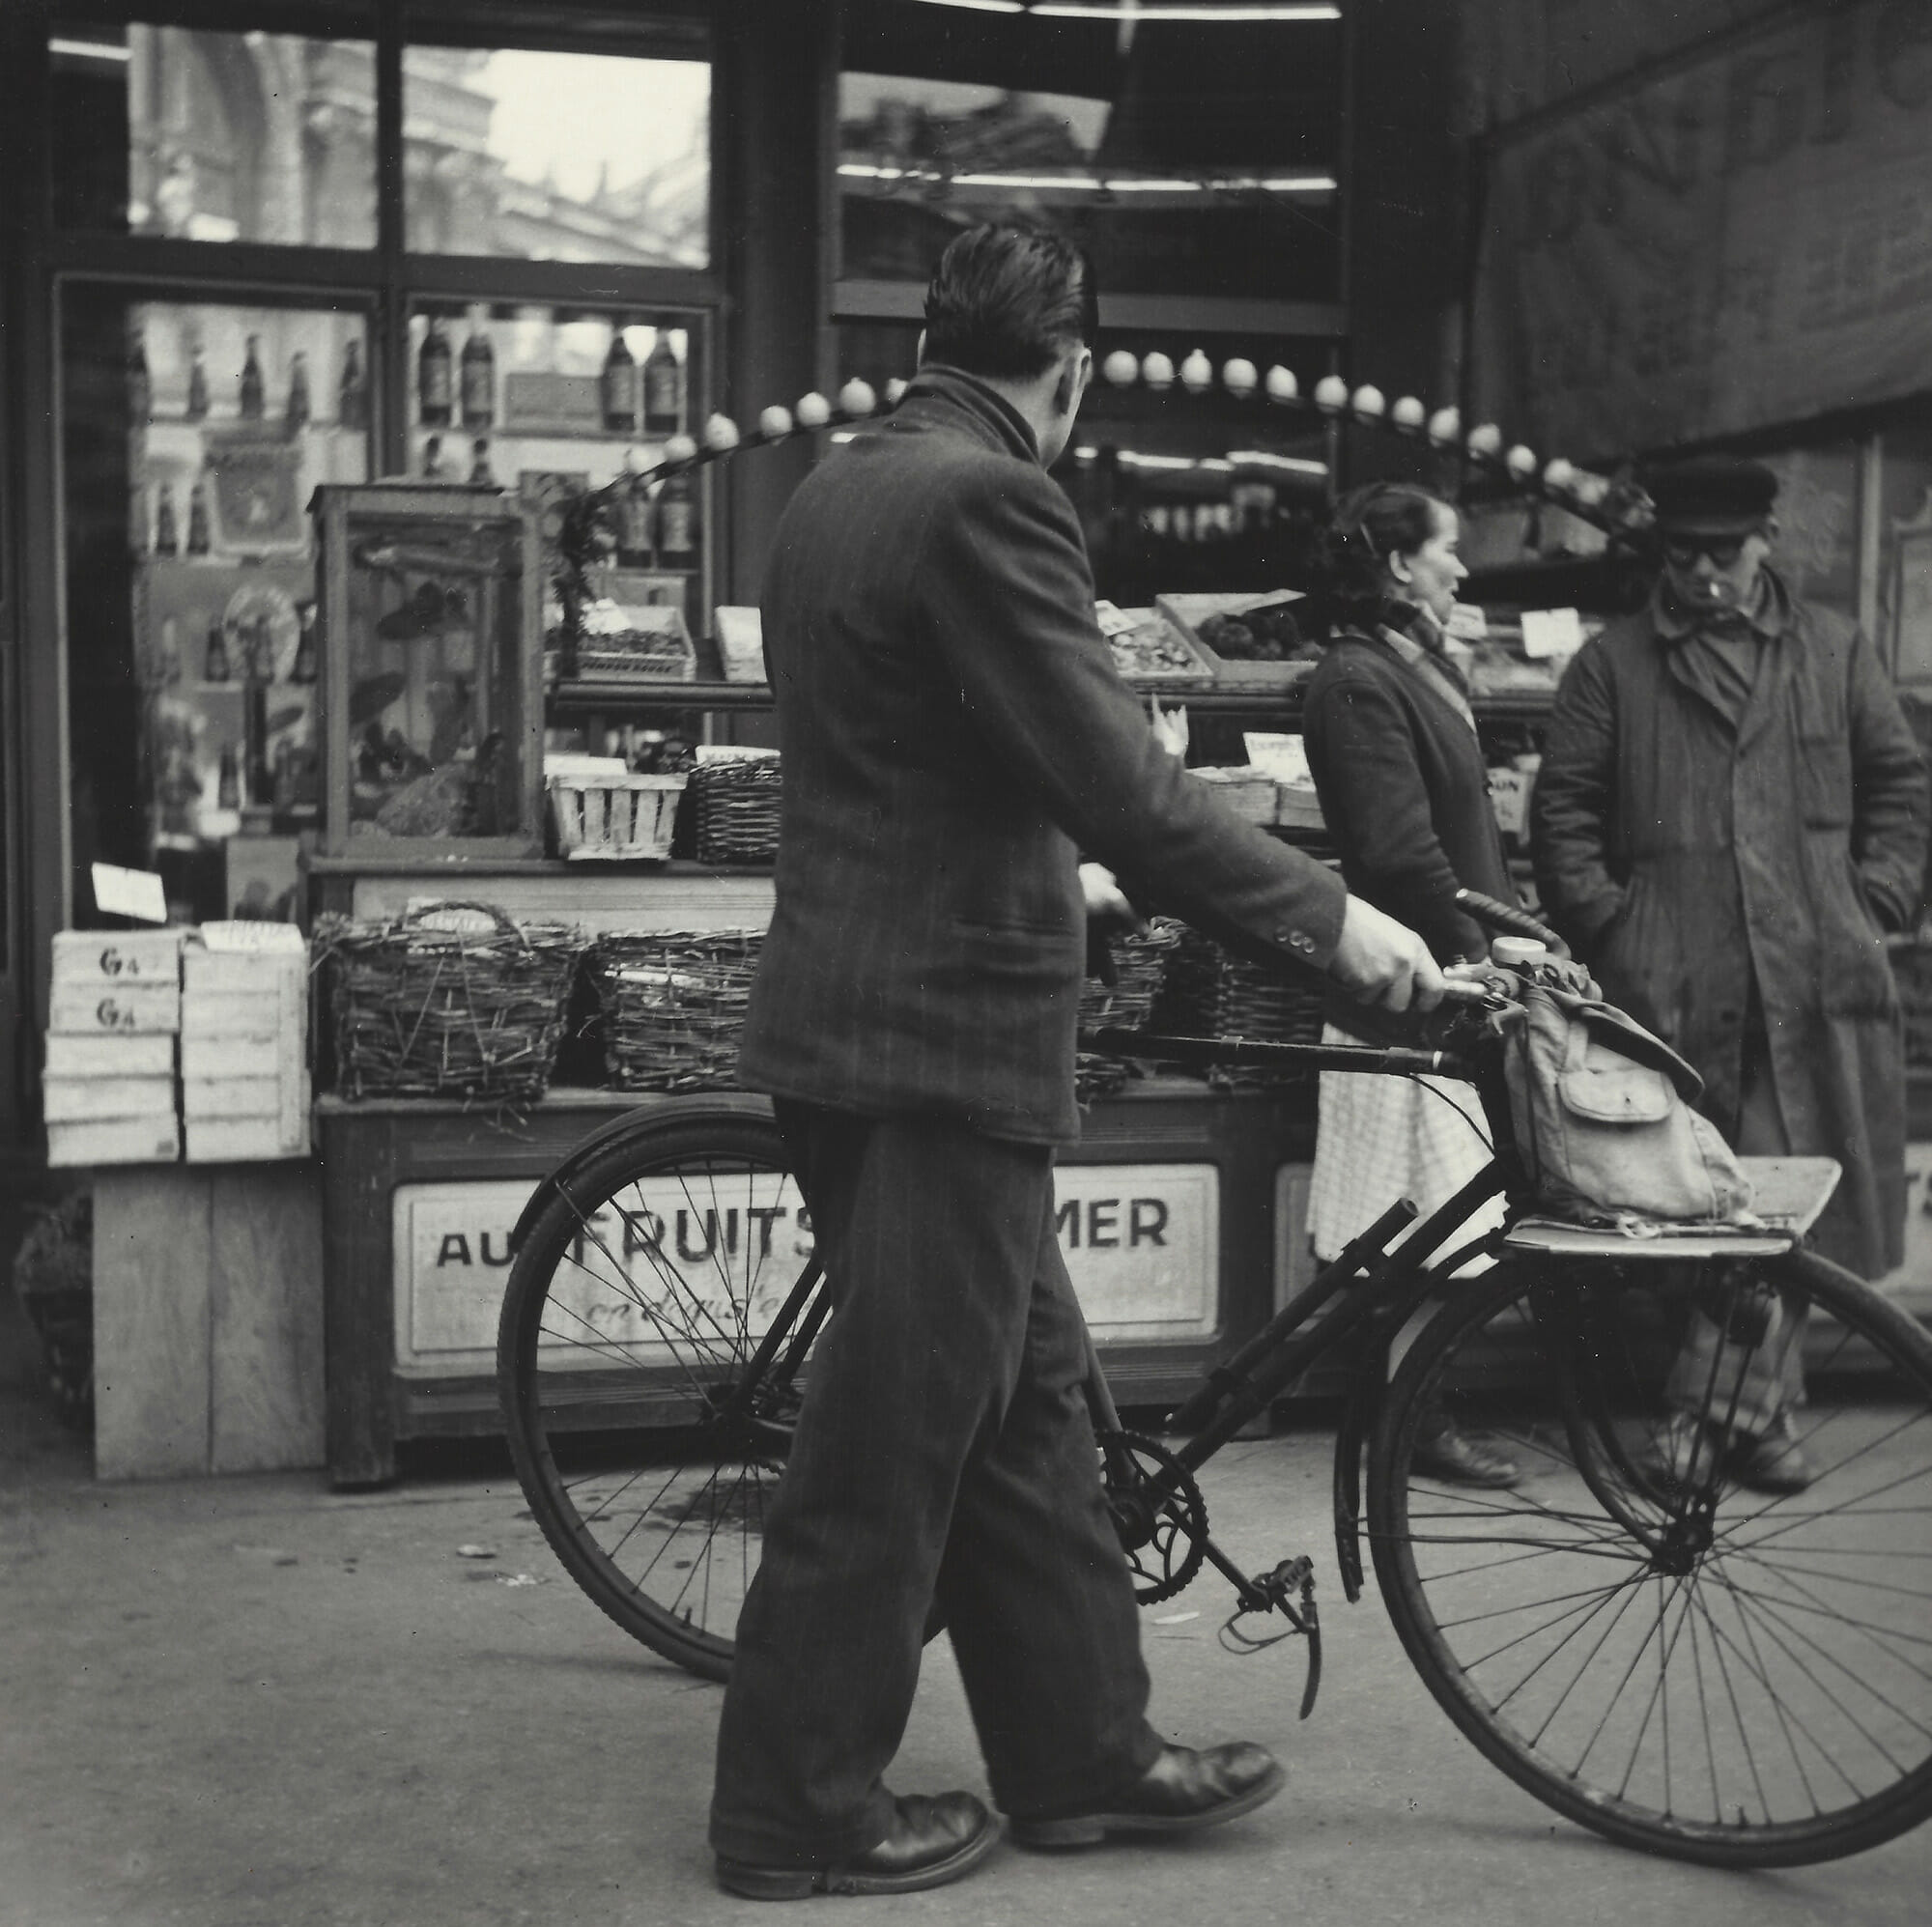 "Rosalie Gwathmey, Paris, 1950, Vintage silver gelatin print, 7 1/2 x 7 1/2 in., Photographer's signature and title in pencil, Photographer's N.Y.C. stamp, The New York Public Library stamp, The New York Public Library - Picture Collection stamp with notations in pencil, annotated ""RG67"" in pencil on verso."